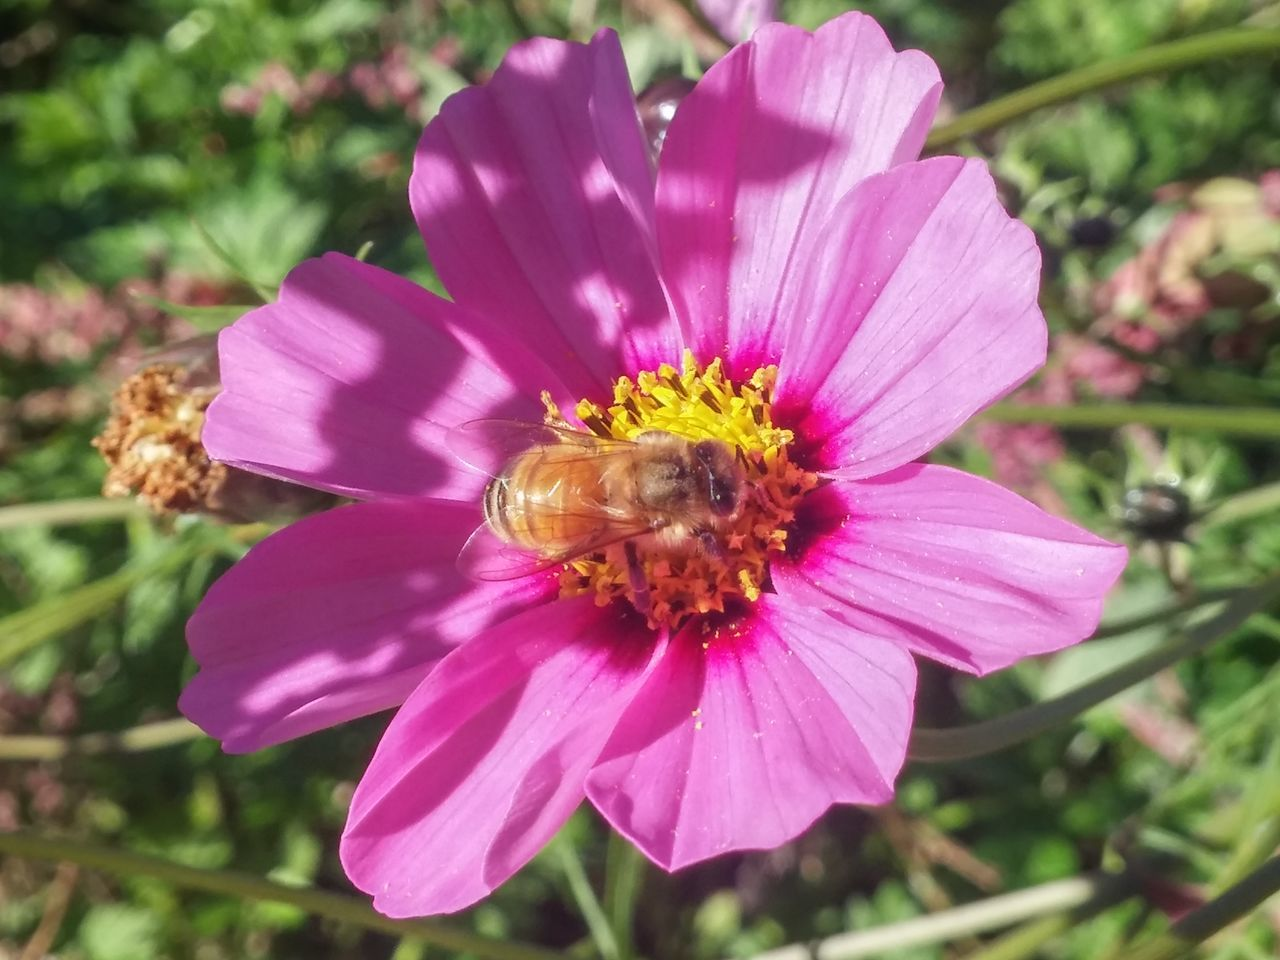 This is not a snail😆😂😂 Flower Pink Color Petal Fragility Nature Insect Flower Head Plant Pollen Freshness Day Outdoors Beauty In Nature Focus On Foreground Close-up Growth Bee 🐝dance Of The Bee🐝 Pollination Autumn In New Zealand Cosmos One Insect Cosmos In My Garden 5 Shadows & Lights